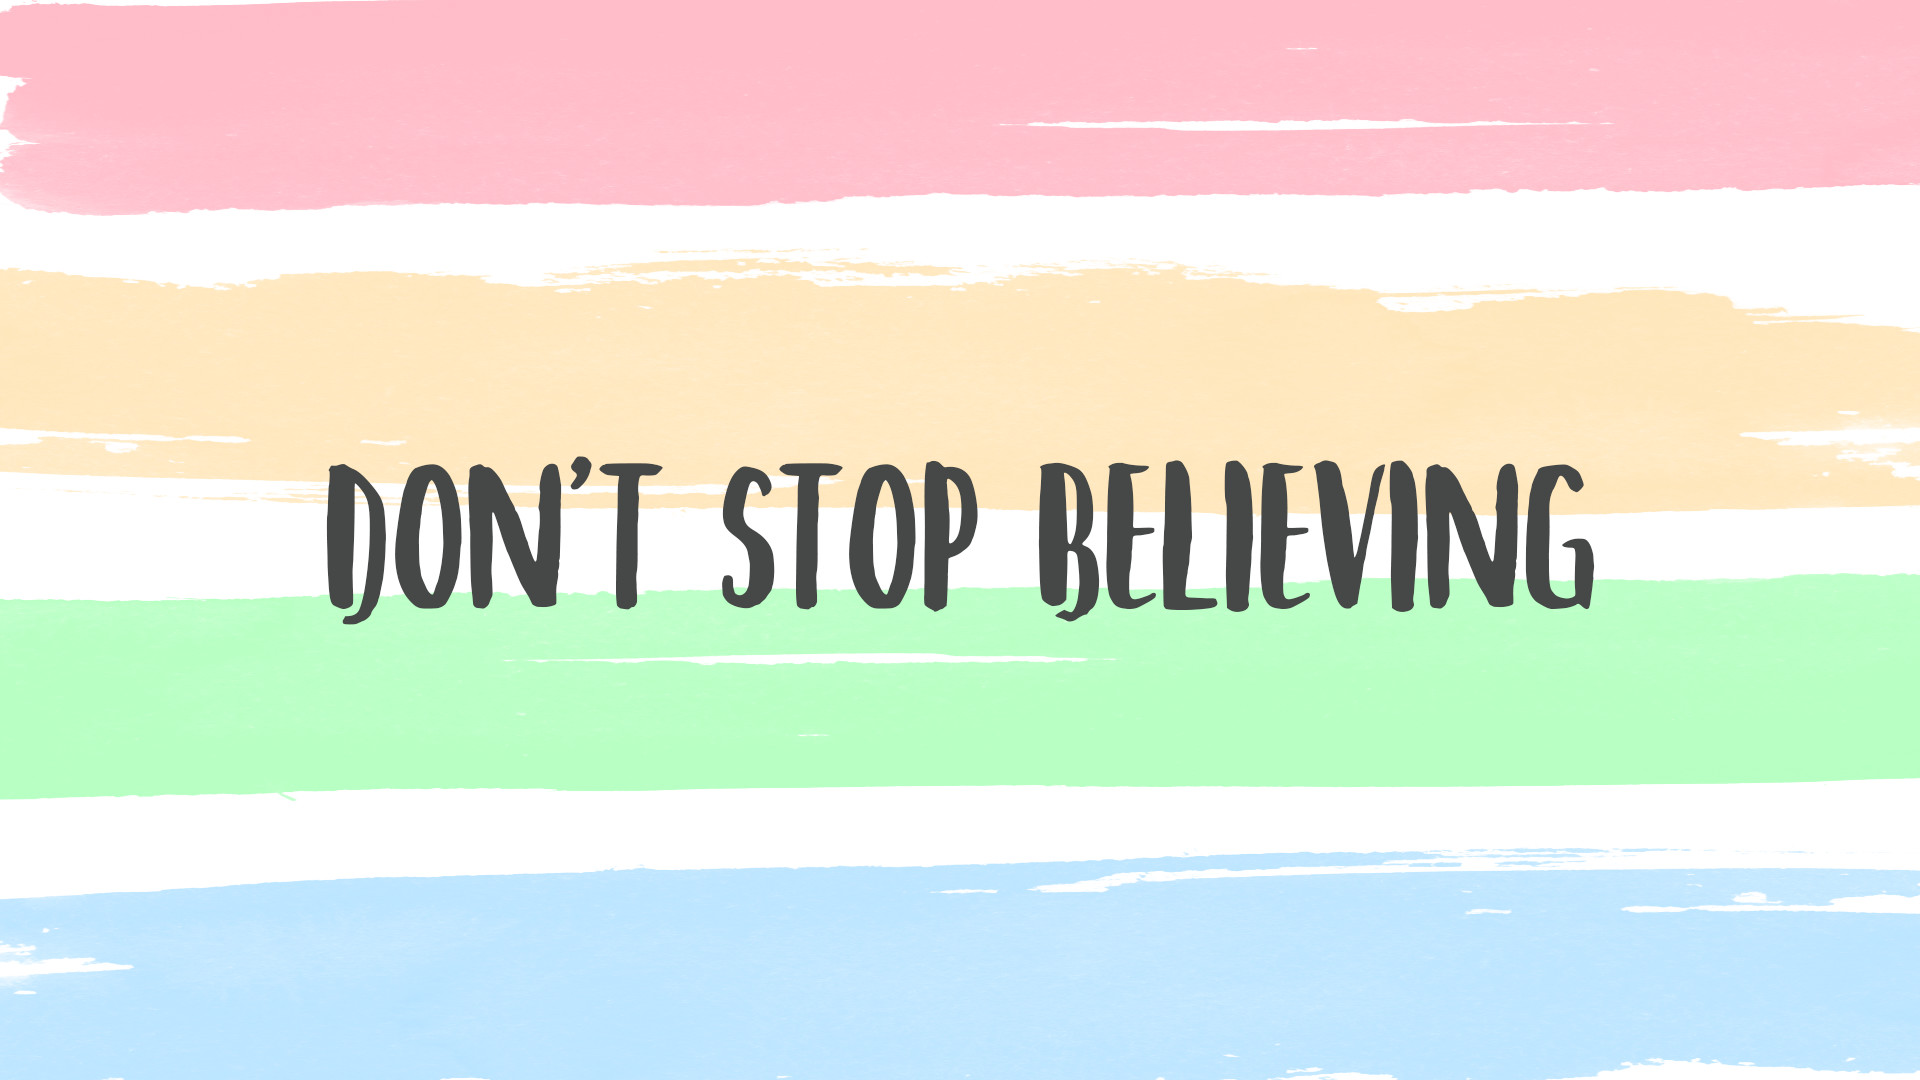 Quotes Desktop Backgrounds Posted By Zoey Cunningham